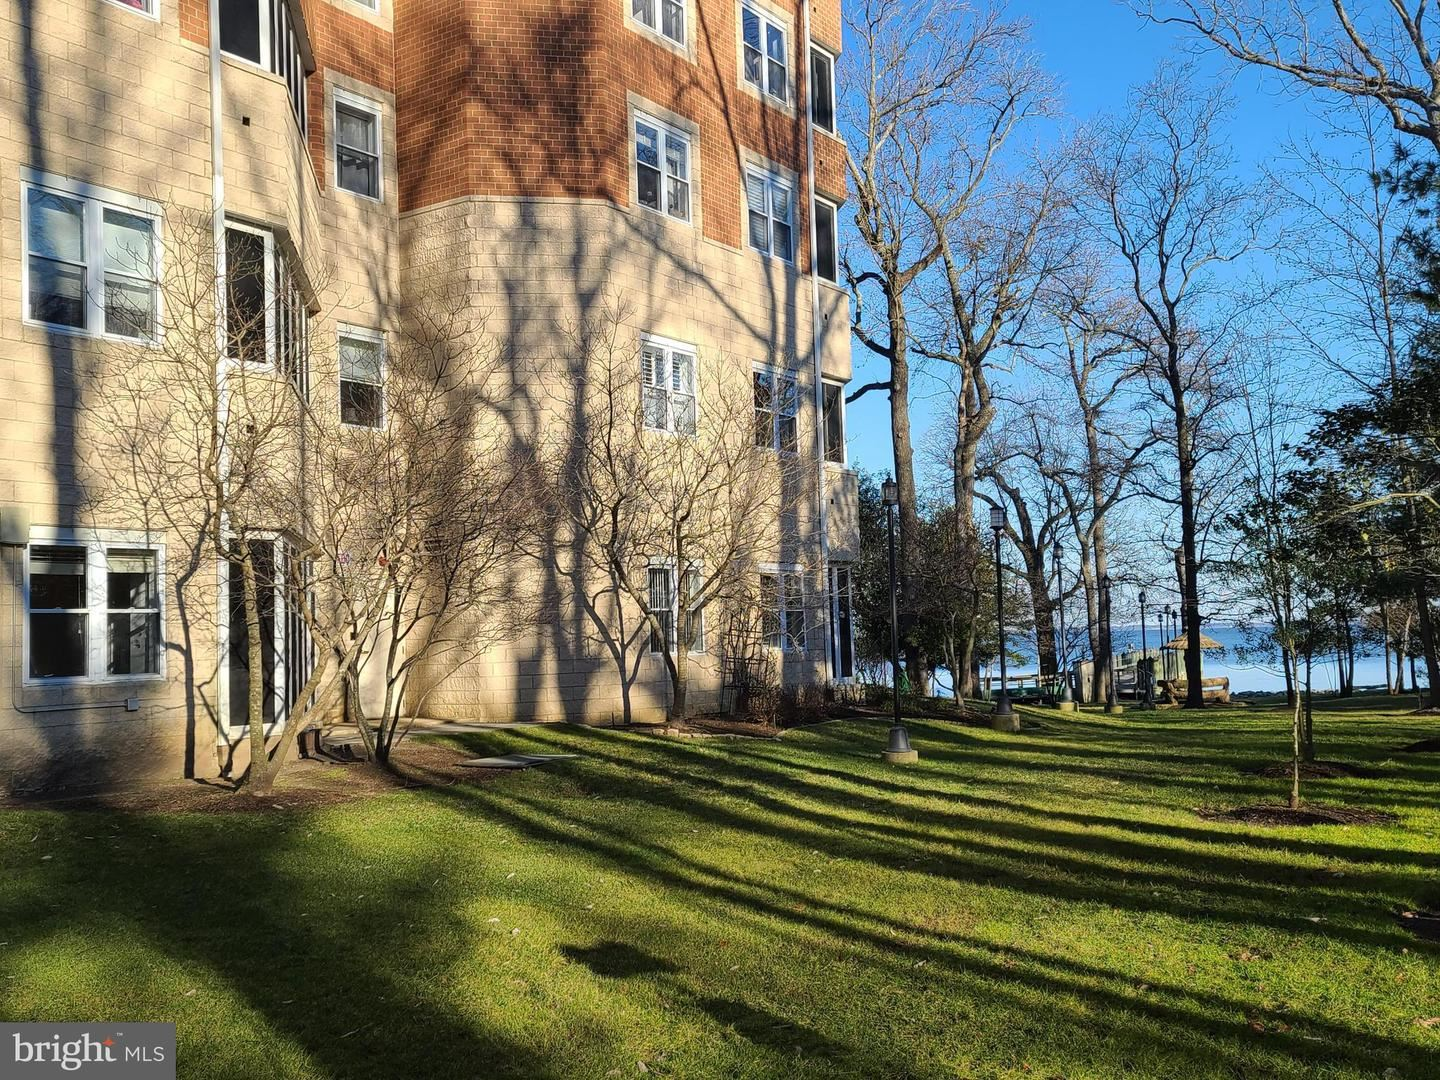 7101 BAY FRONT DR #121, Annapolis, MD 21403 - MLS#: MDAA457404